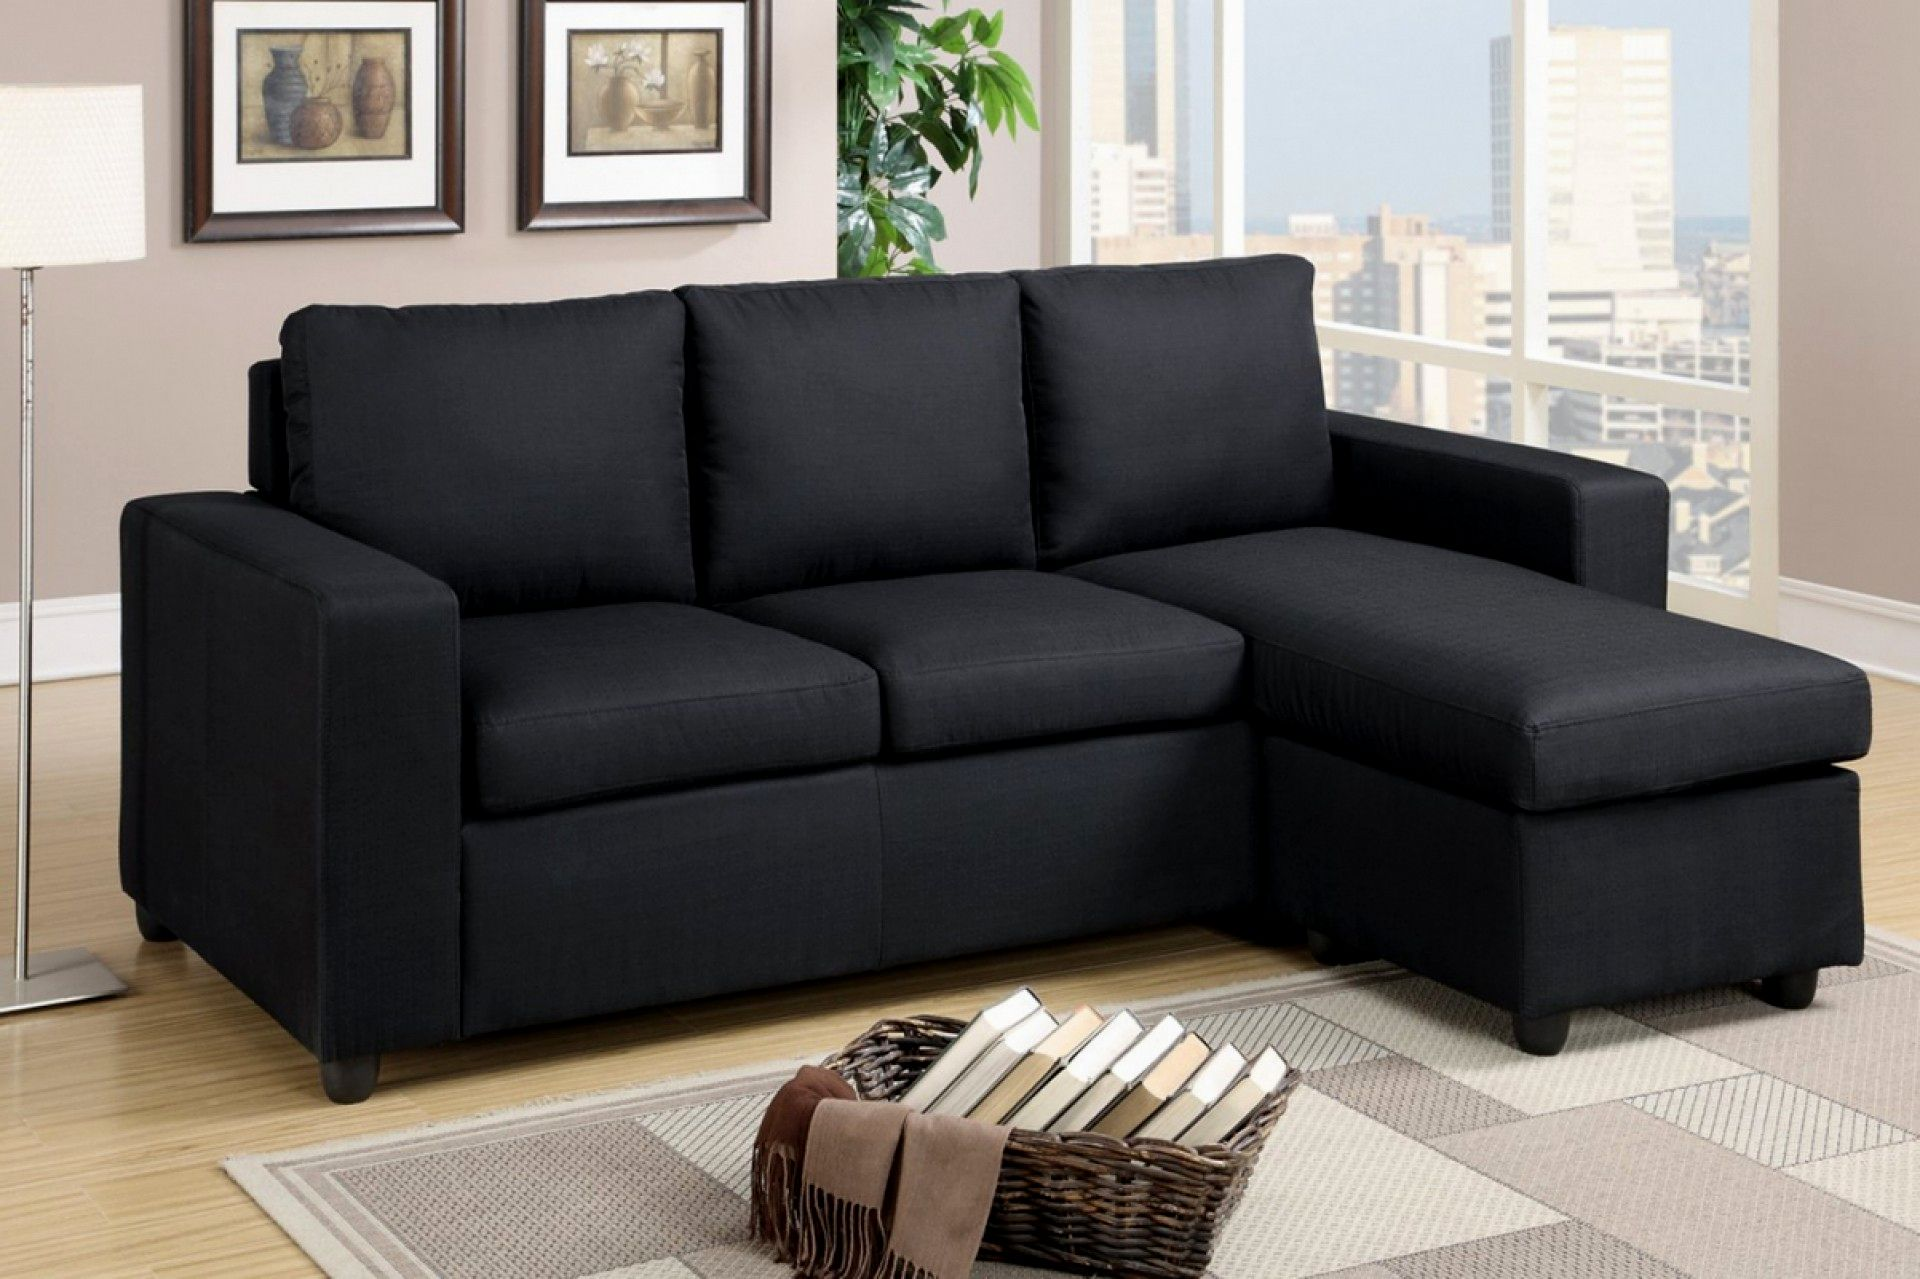 awesome buchannan faux leather sofa decoration-Cool Buchannan Faux Leather sofa Décor